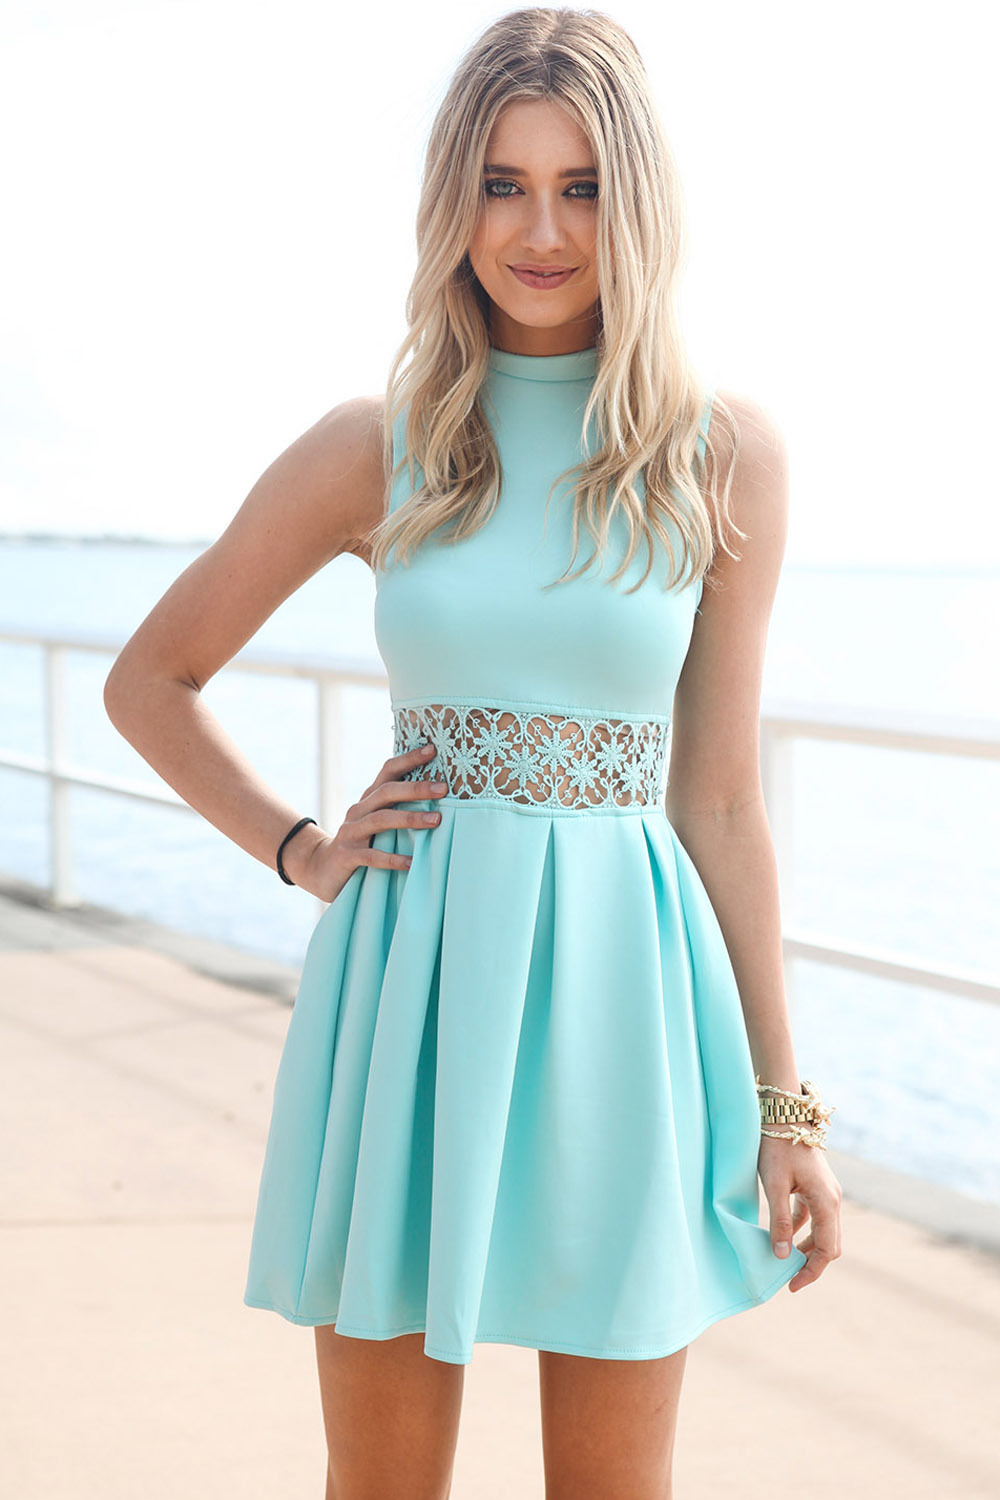 Church Dresses For Women When seeking some great alternatives in church dresses for women, besides just the occasional cute dress, it's always a good move to look at selections in women's dress suits or suit separates to get some ideas in possibilities that can really build a wardrobe.